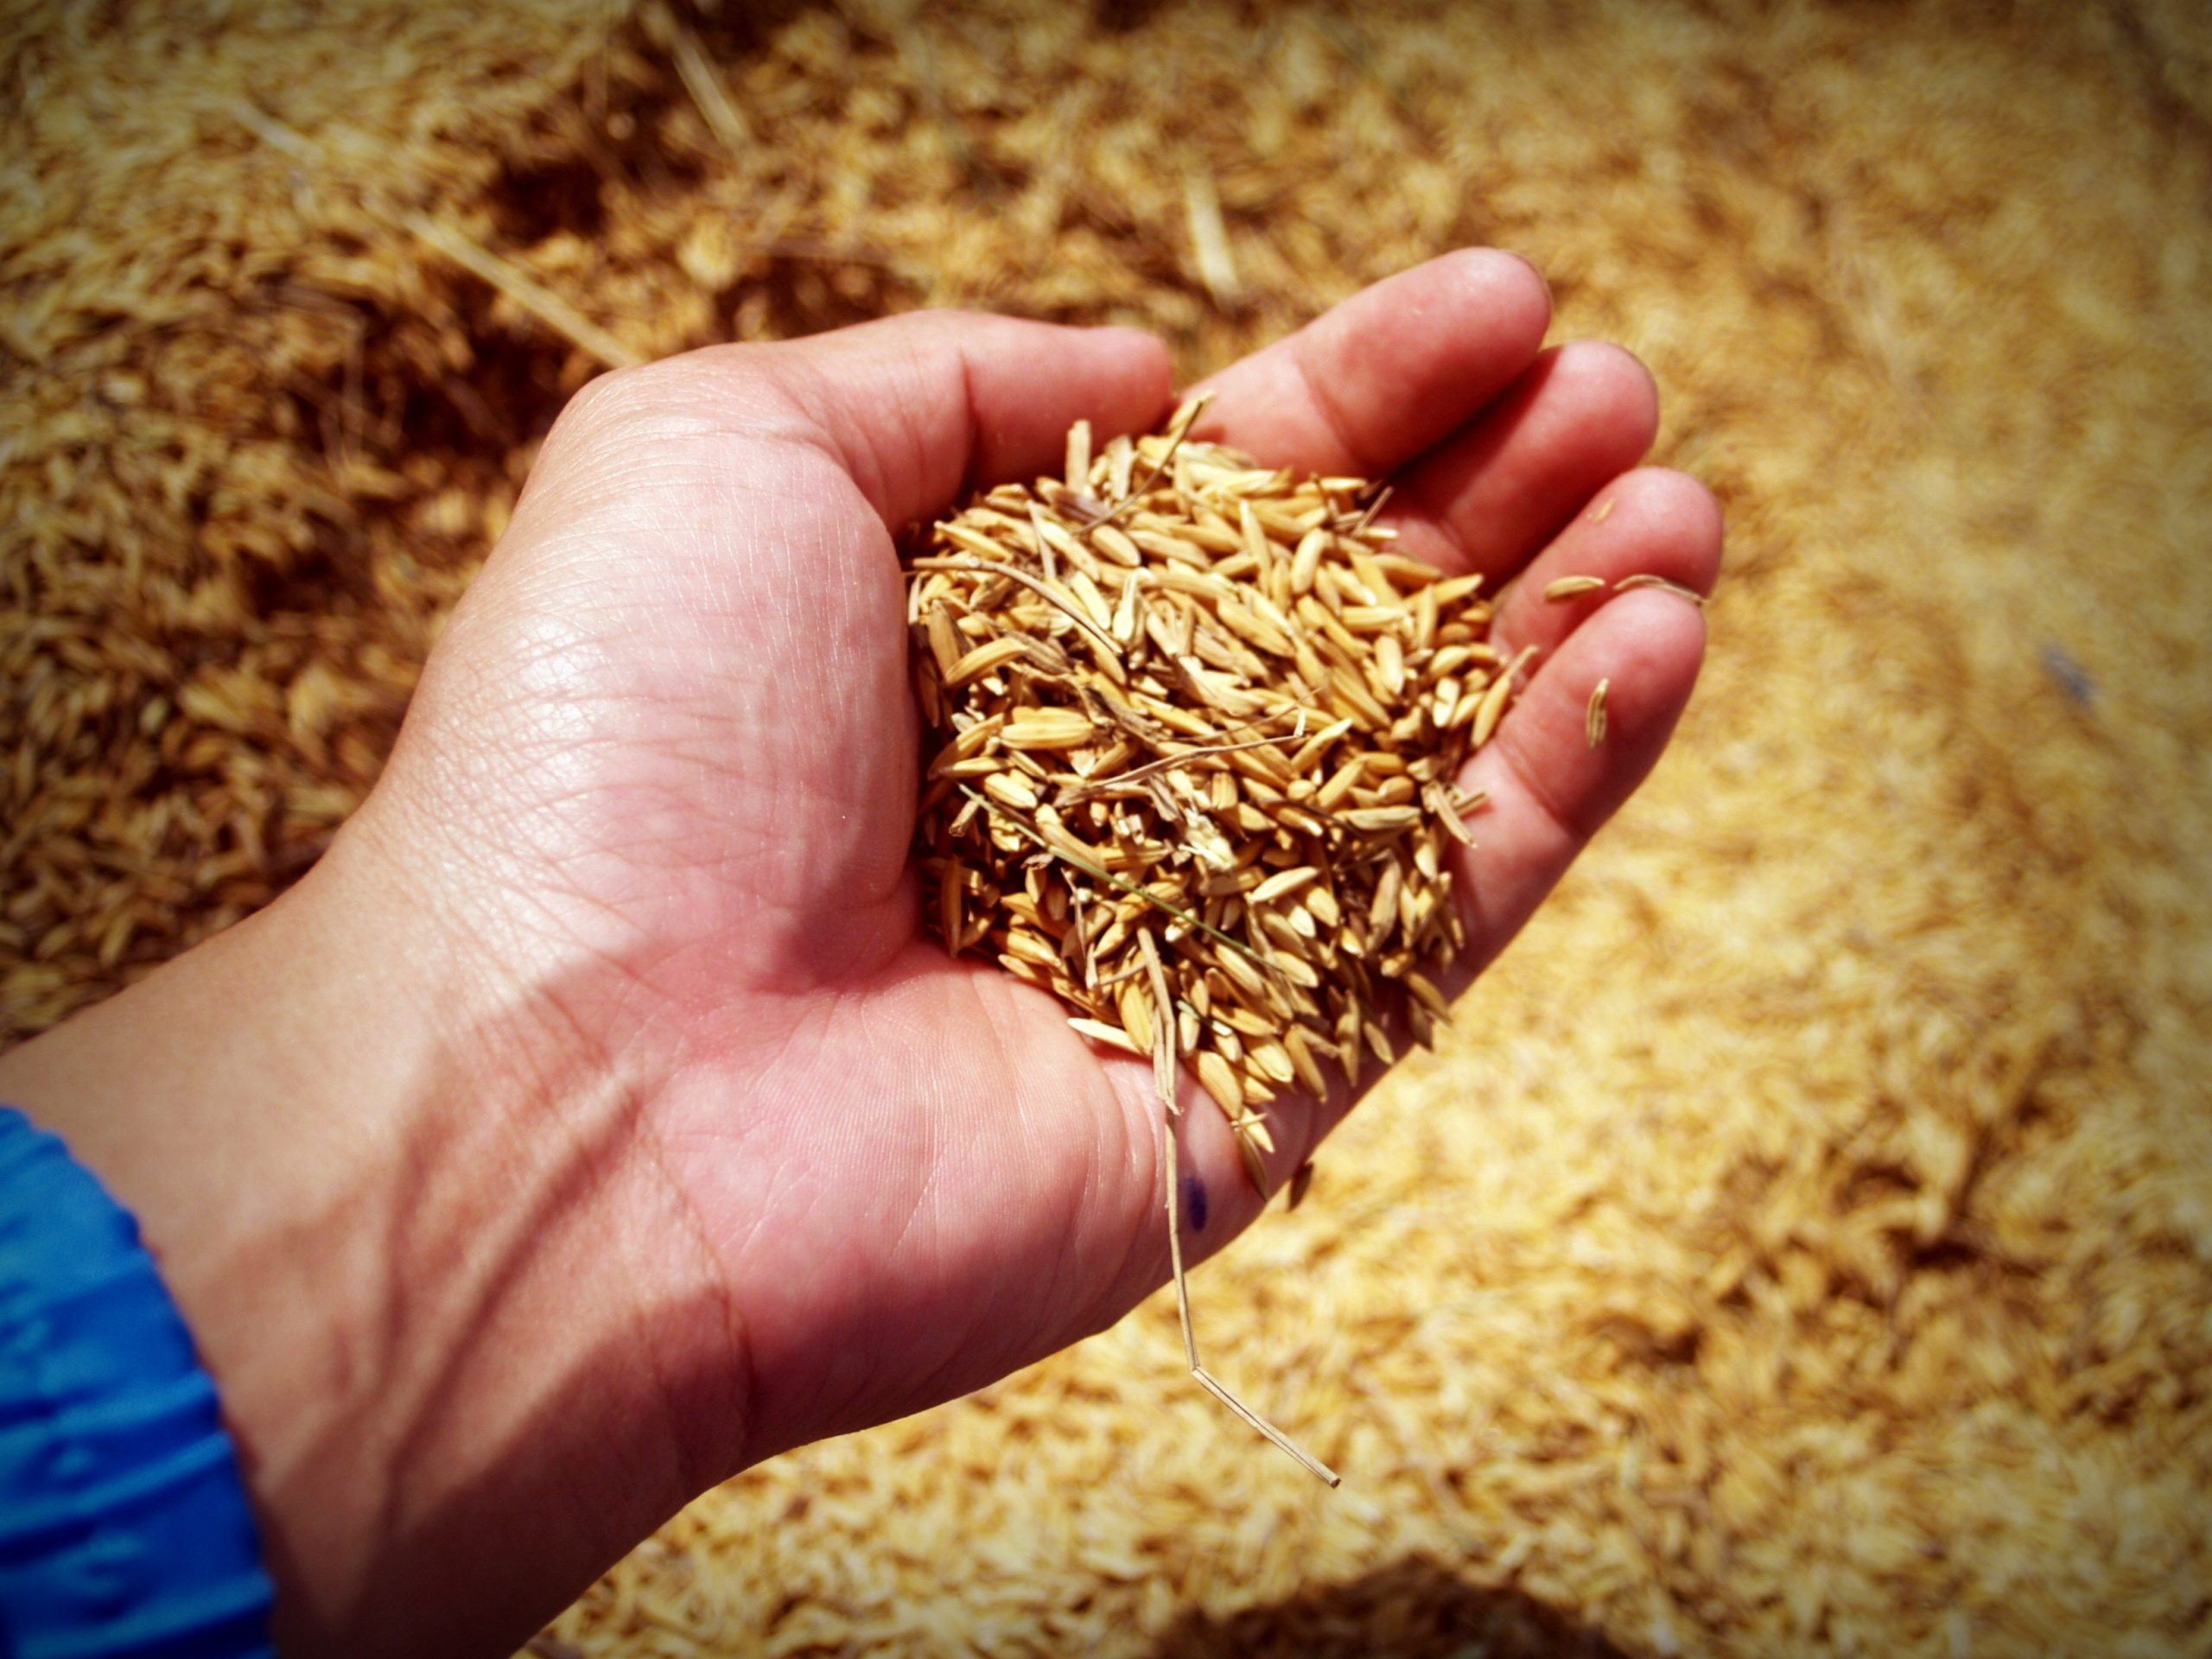 man's hand holding grains